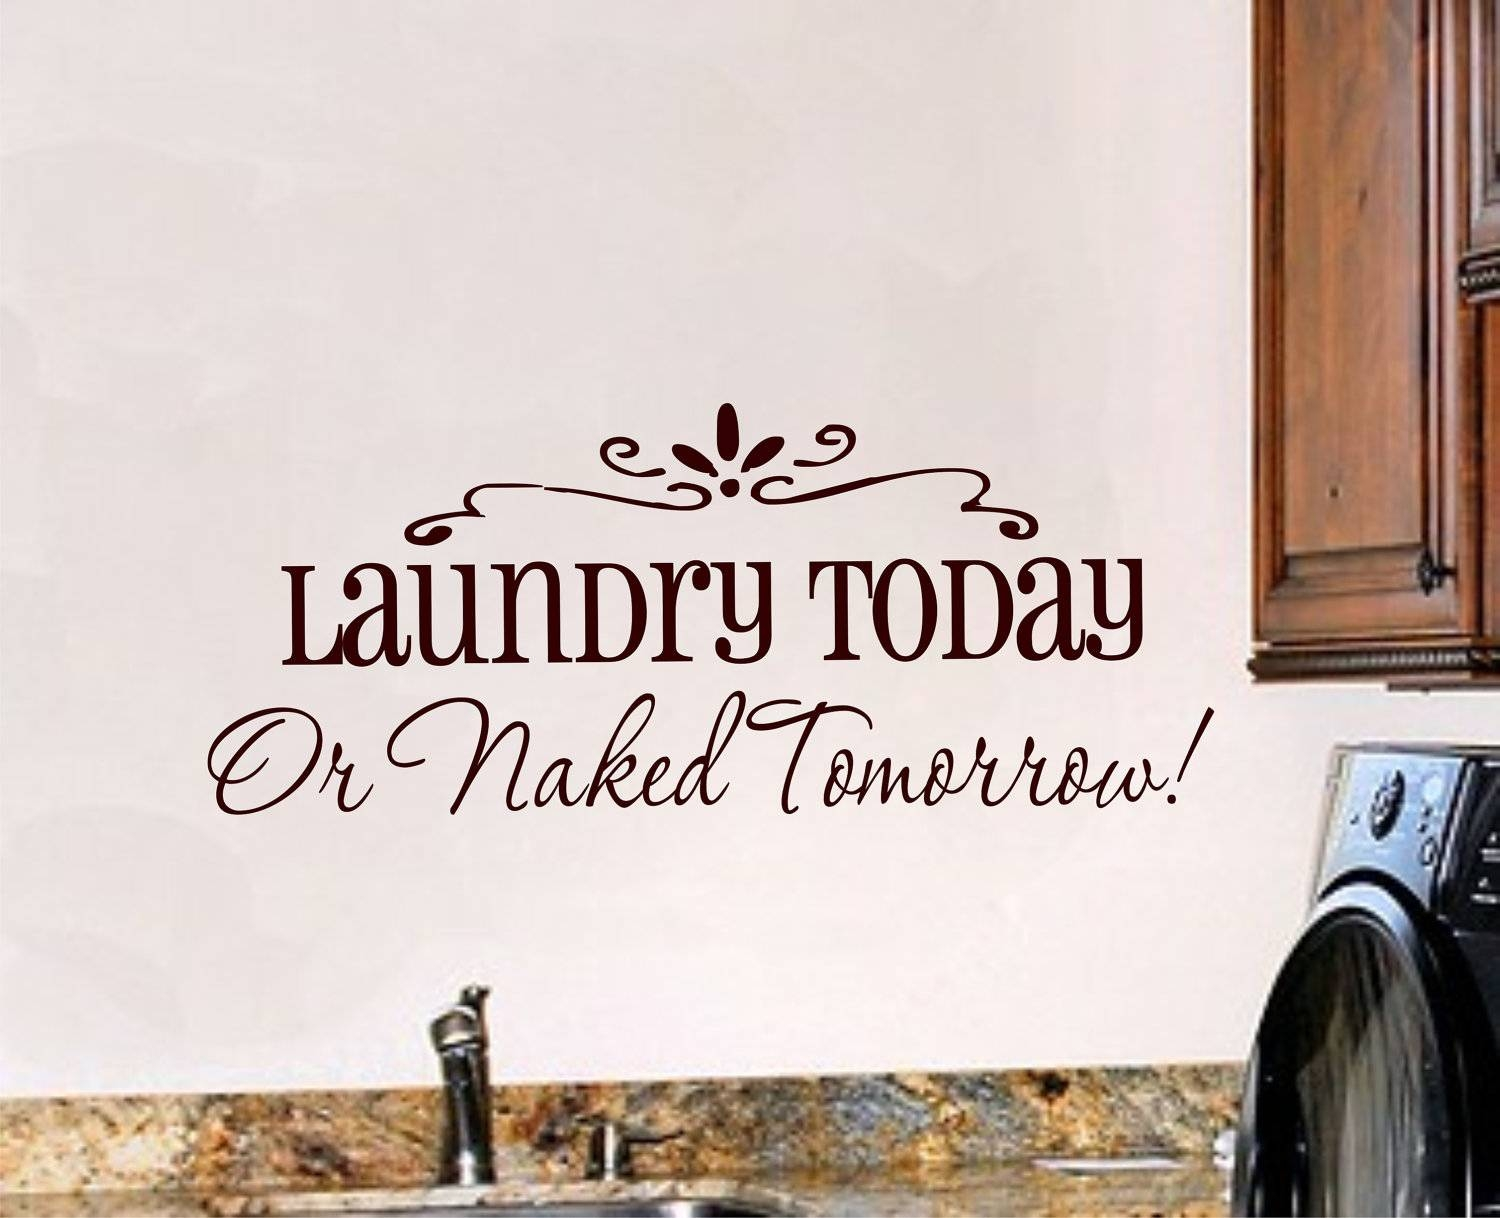 Laundry Room Wall Decal Laundry Room Decor Vinyl Wall Art Pertaining To Most Recent Laundry Room Wall Art (View 21 of 30)